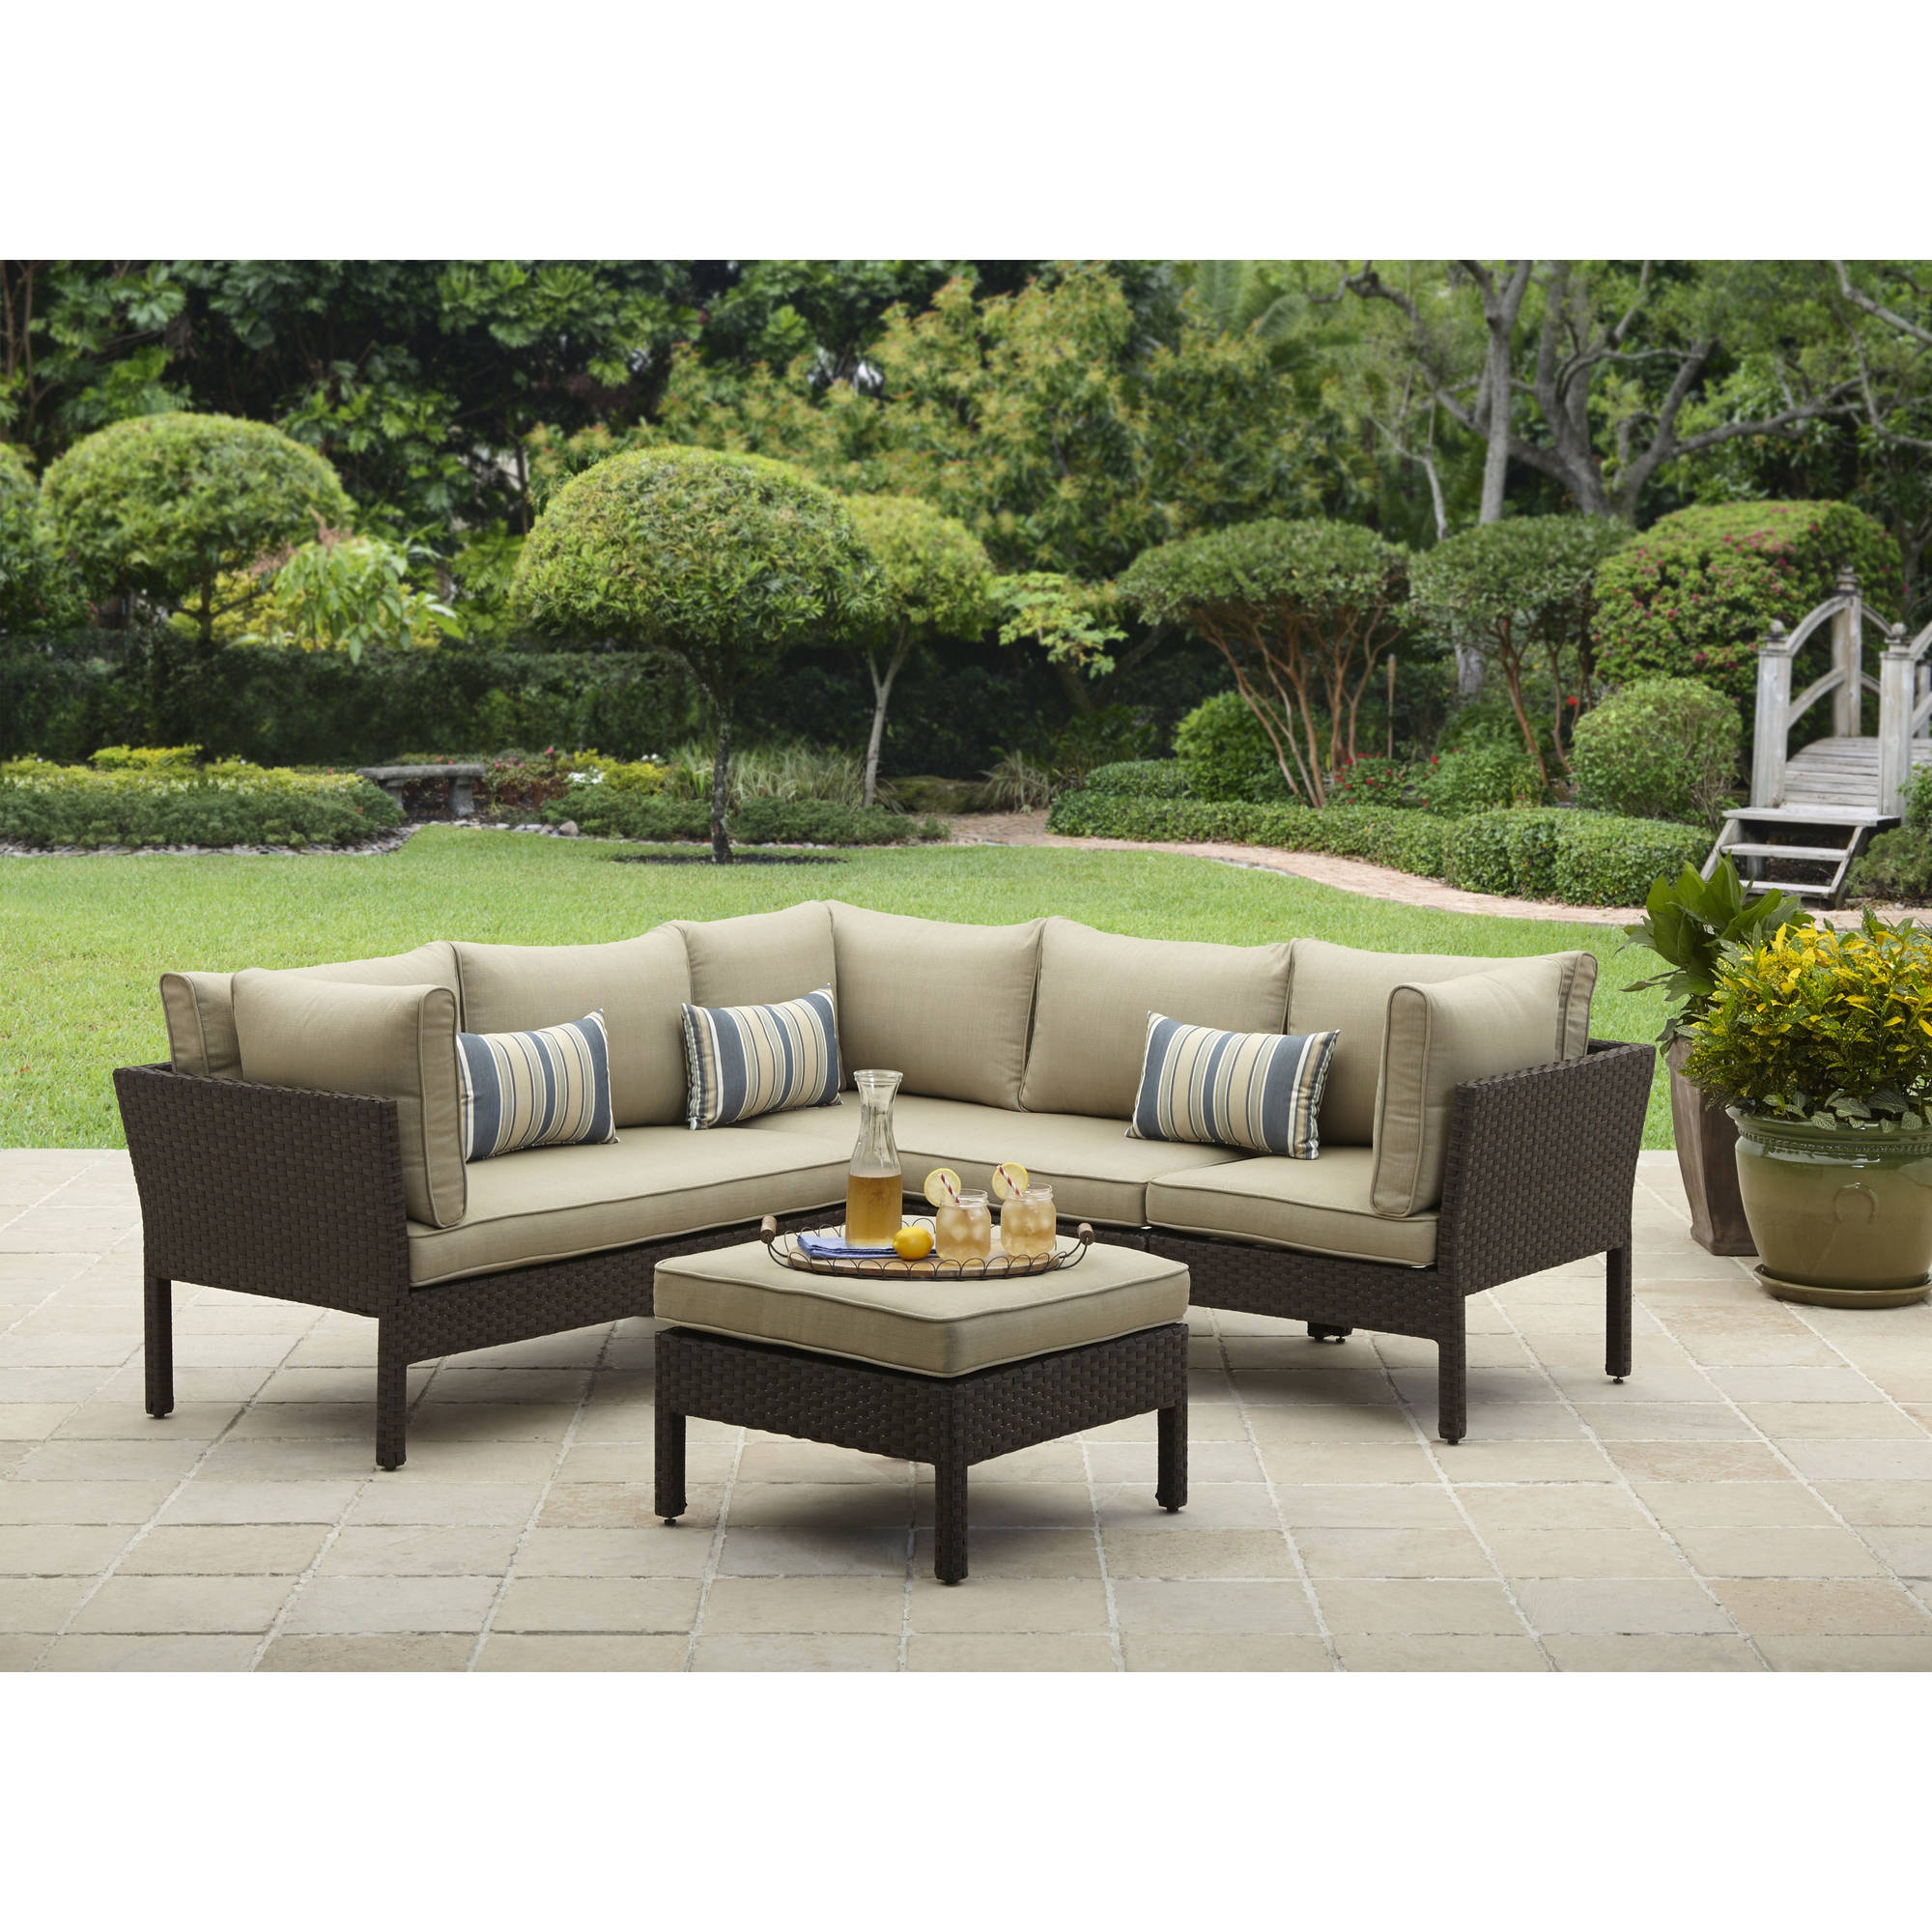 Better Homes and Gardens Avila Beach 4 Piece Sectional Walmart